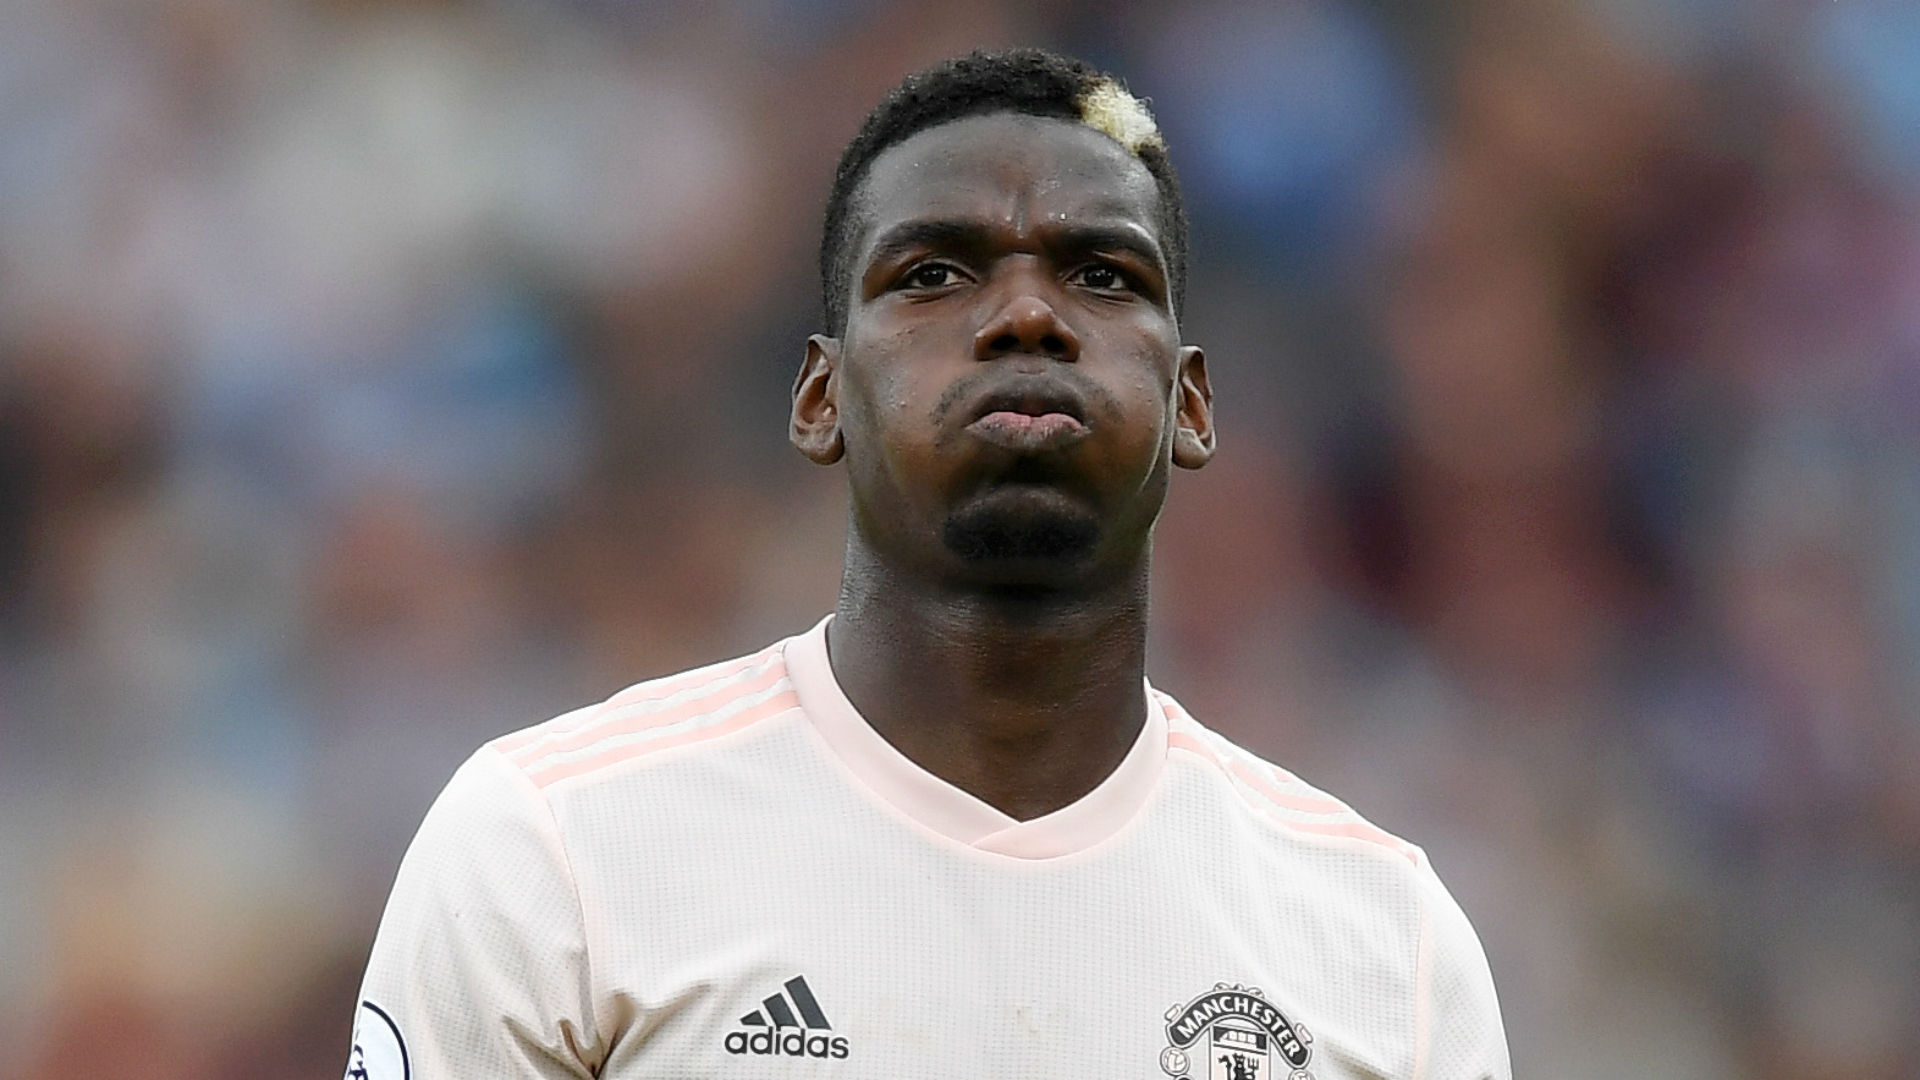 Paul Pogba: 'Pogba Has Never Asked To Leave Man Utd'